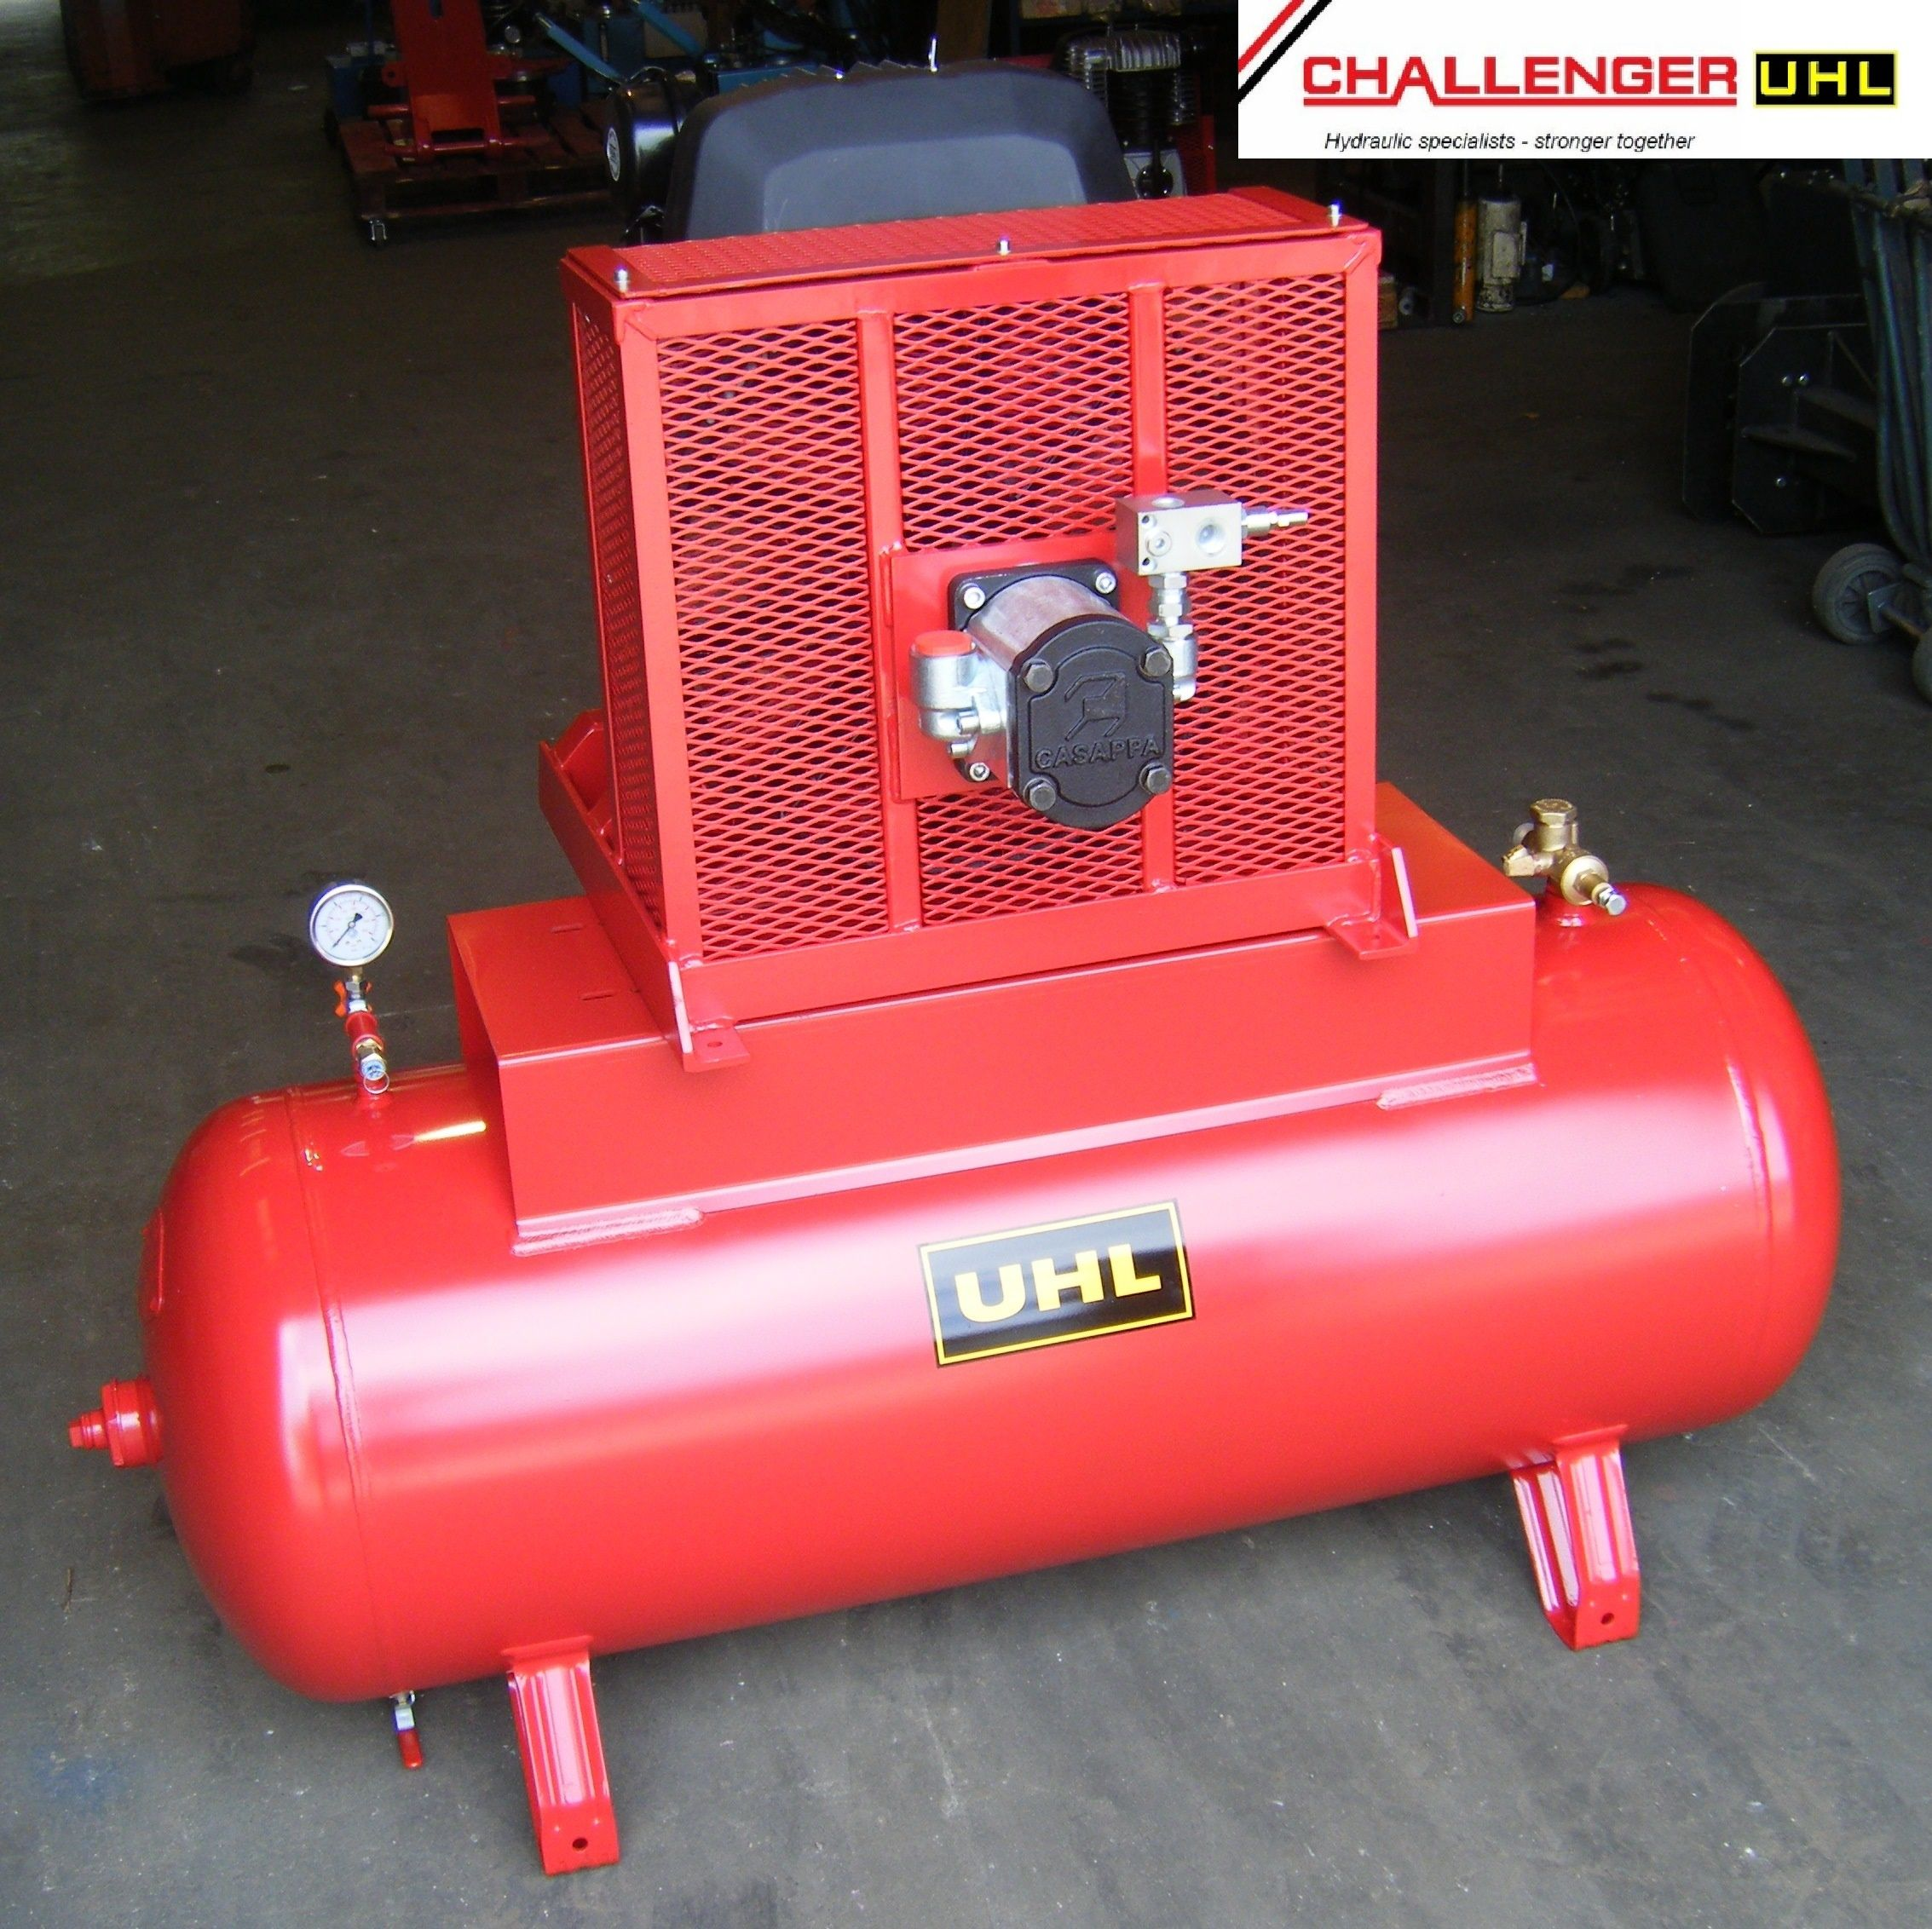 TRC42 Hydraulically Powered Compressor The compressor is